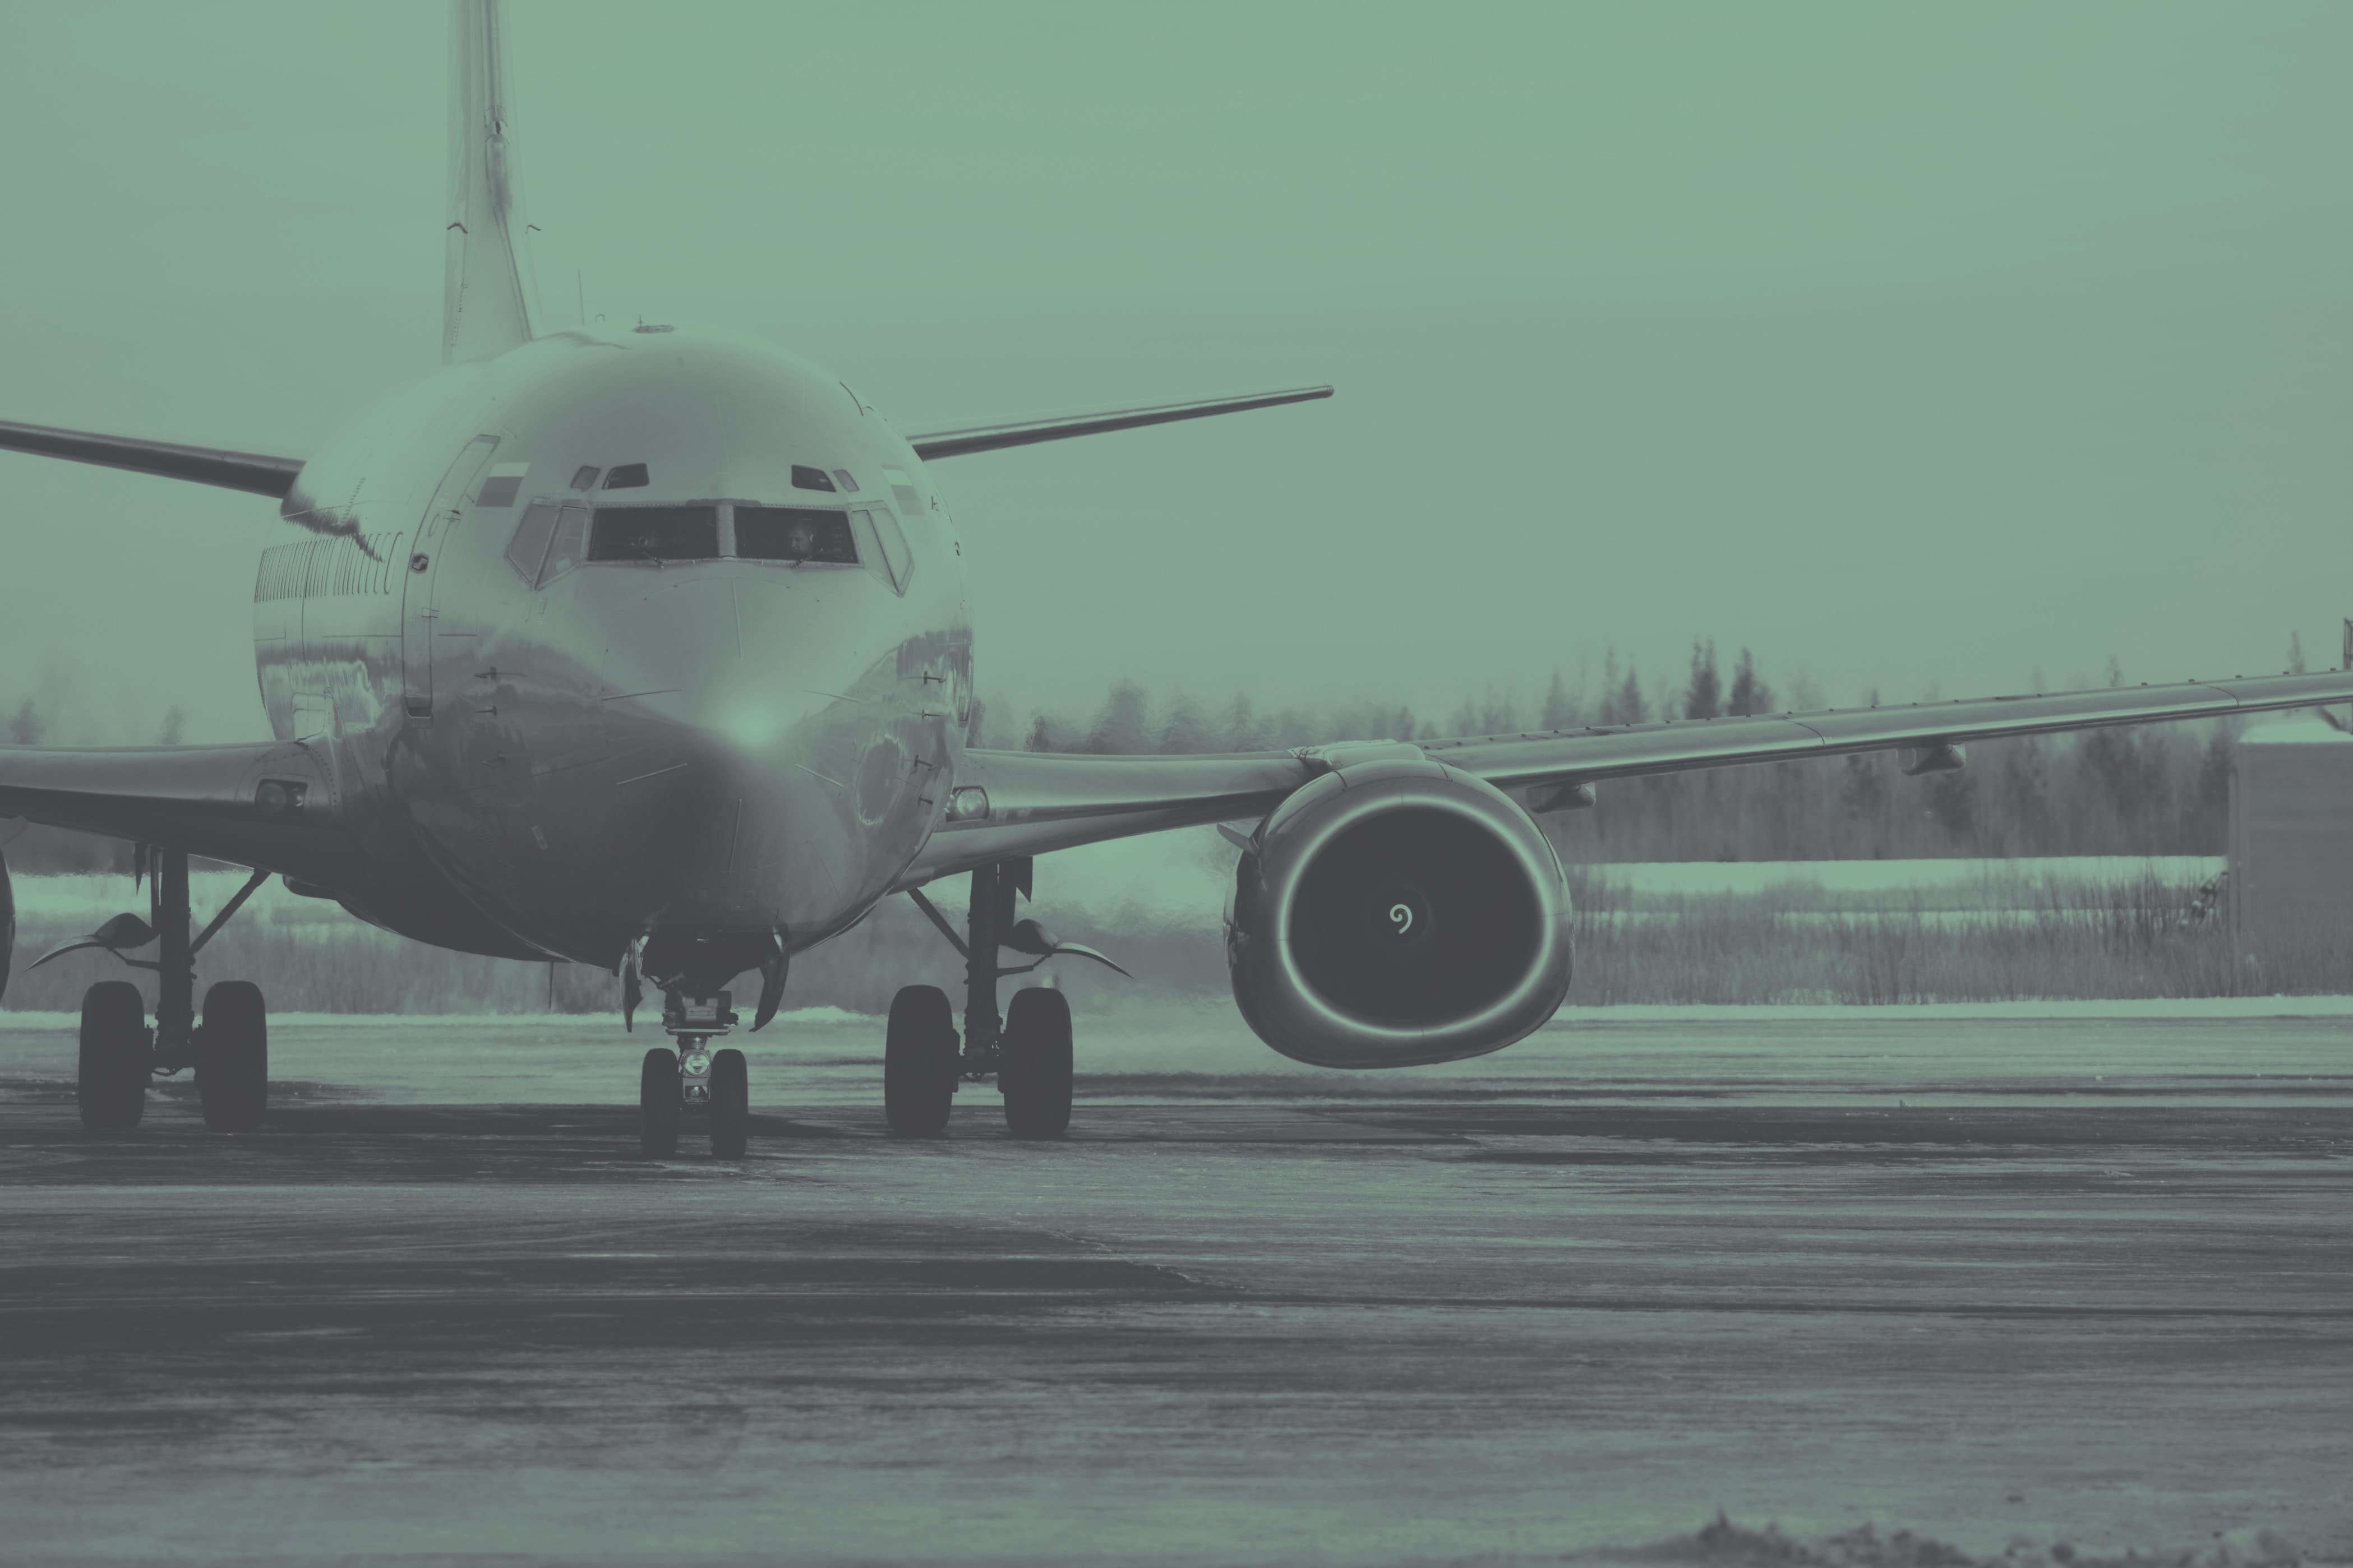 grayscale photo of commercial airplane on runway